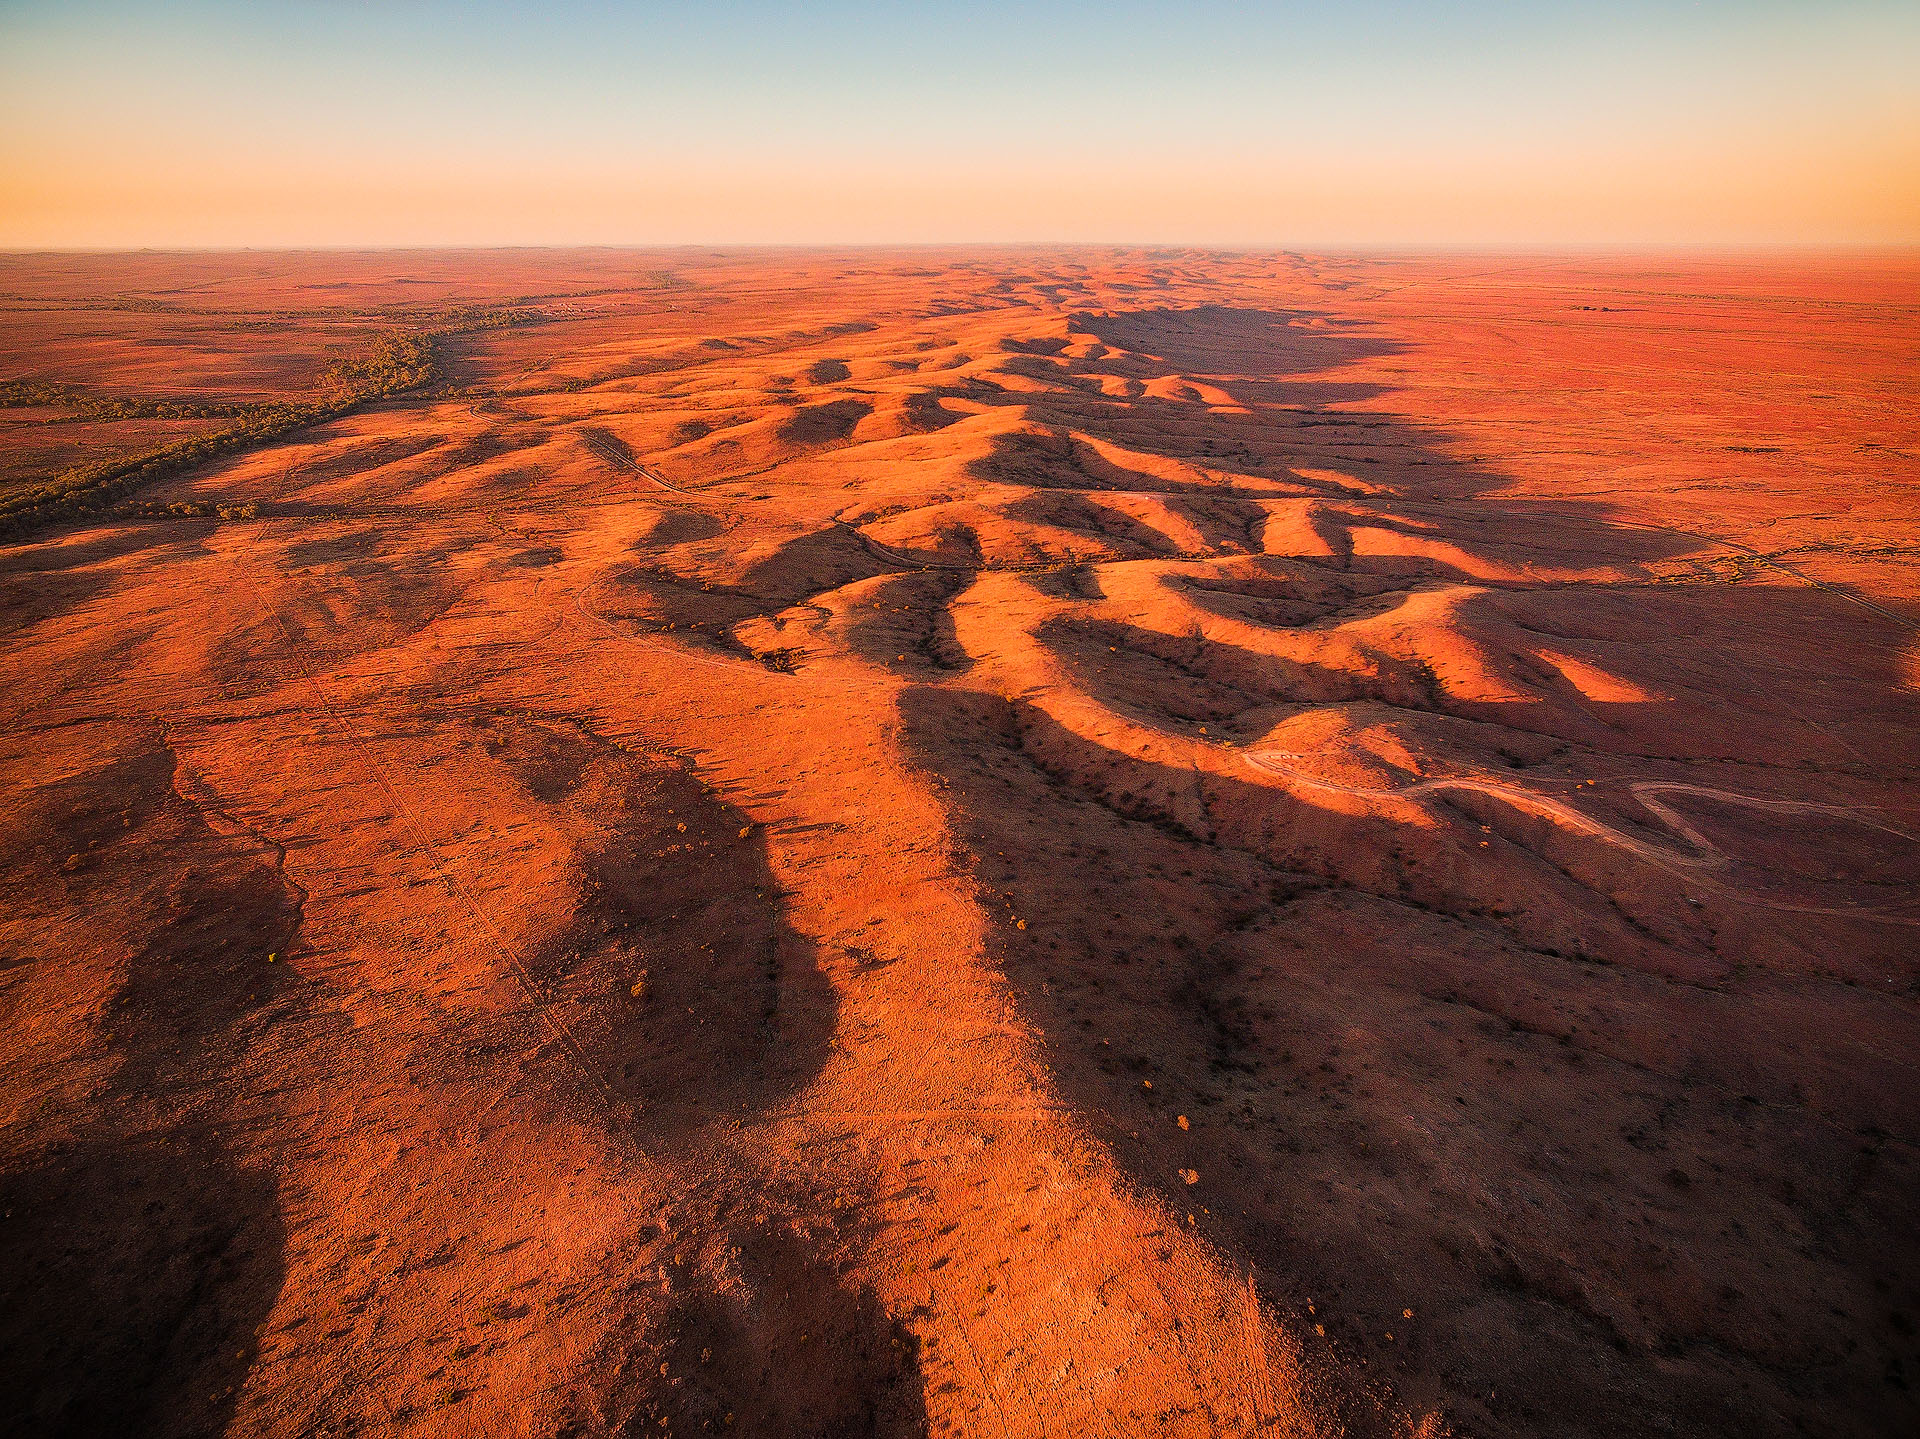 broken hill sunrise aerial new south wales australia outback nsw silverton mundi mundi plains